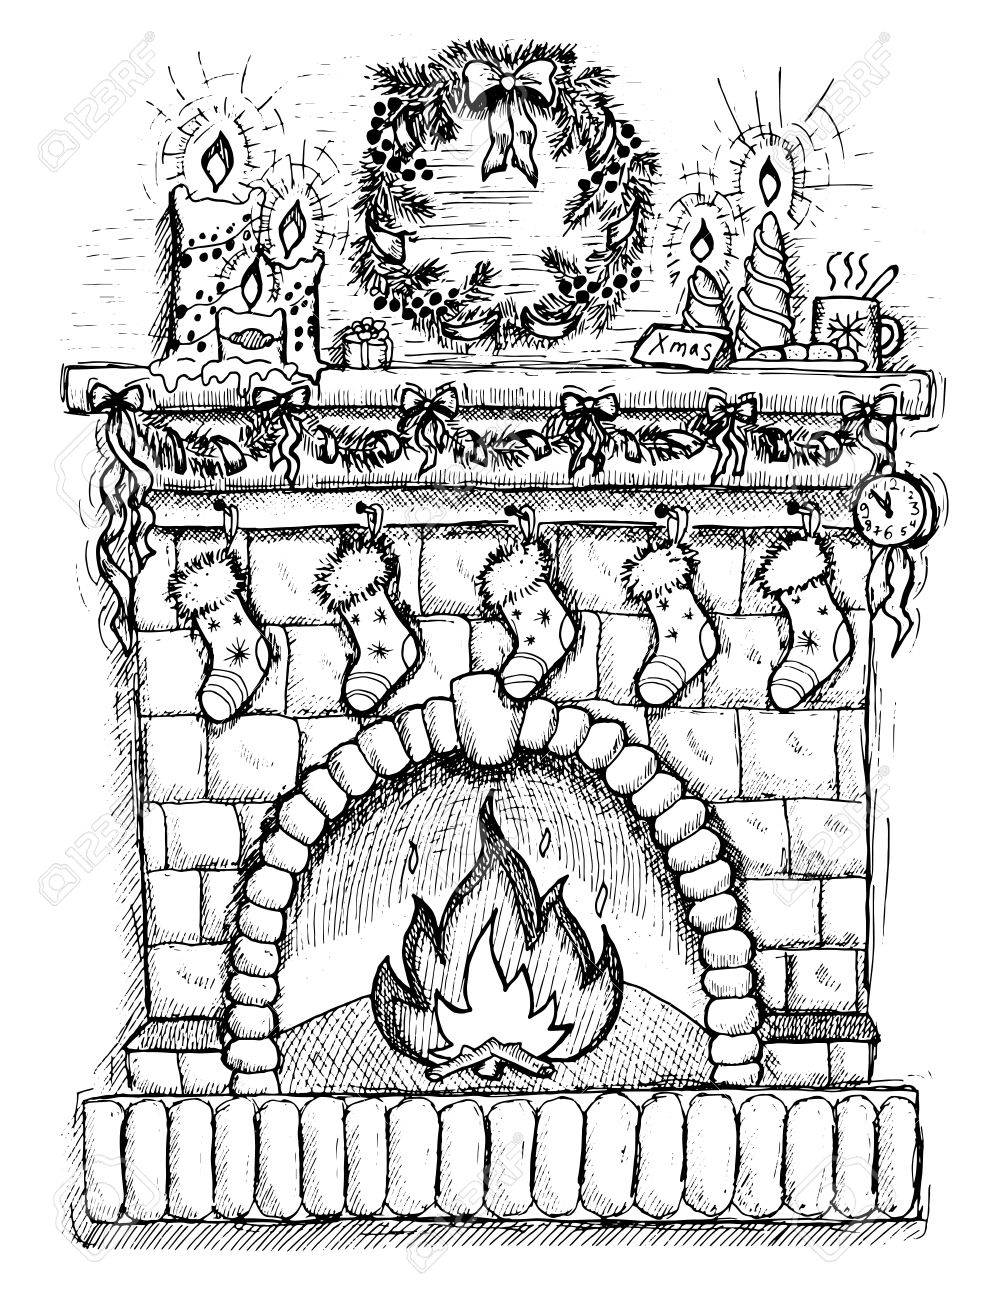 Illustration of fireplace with socks and Christmas decorations,..